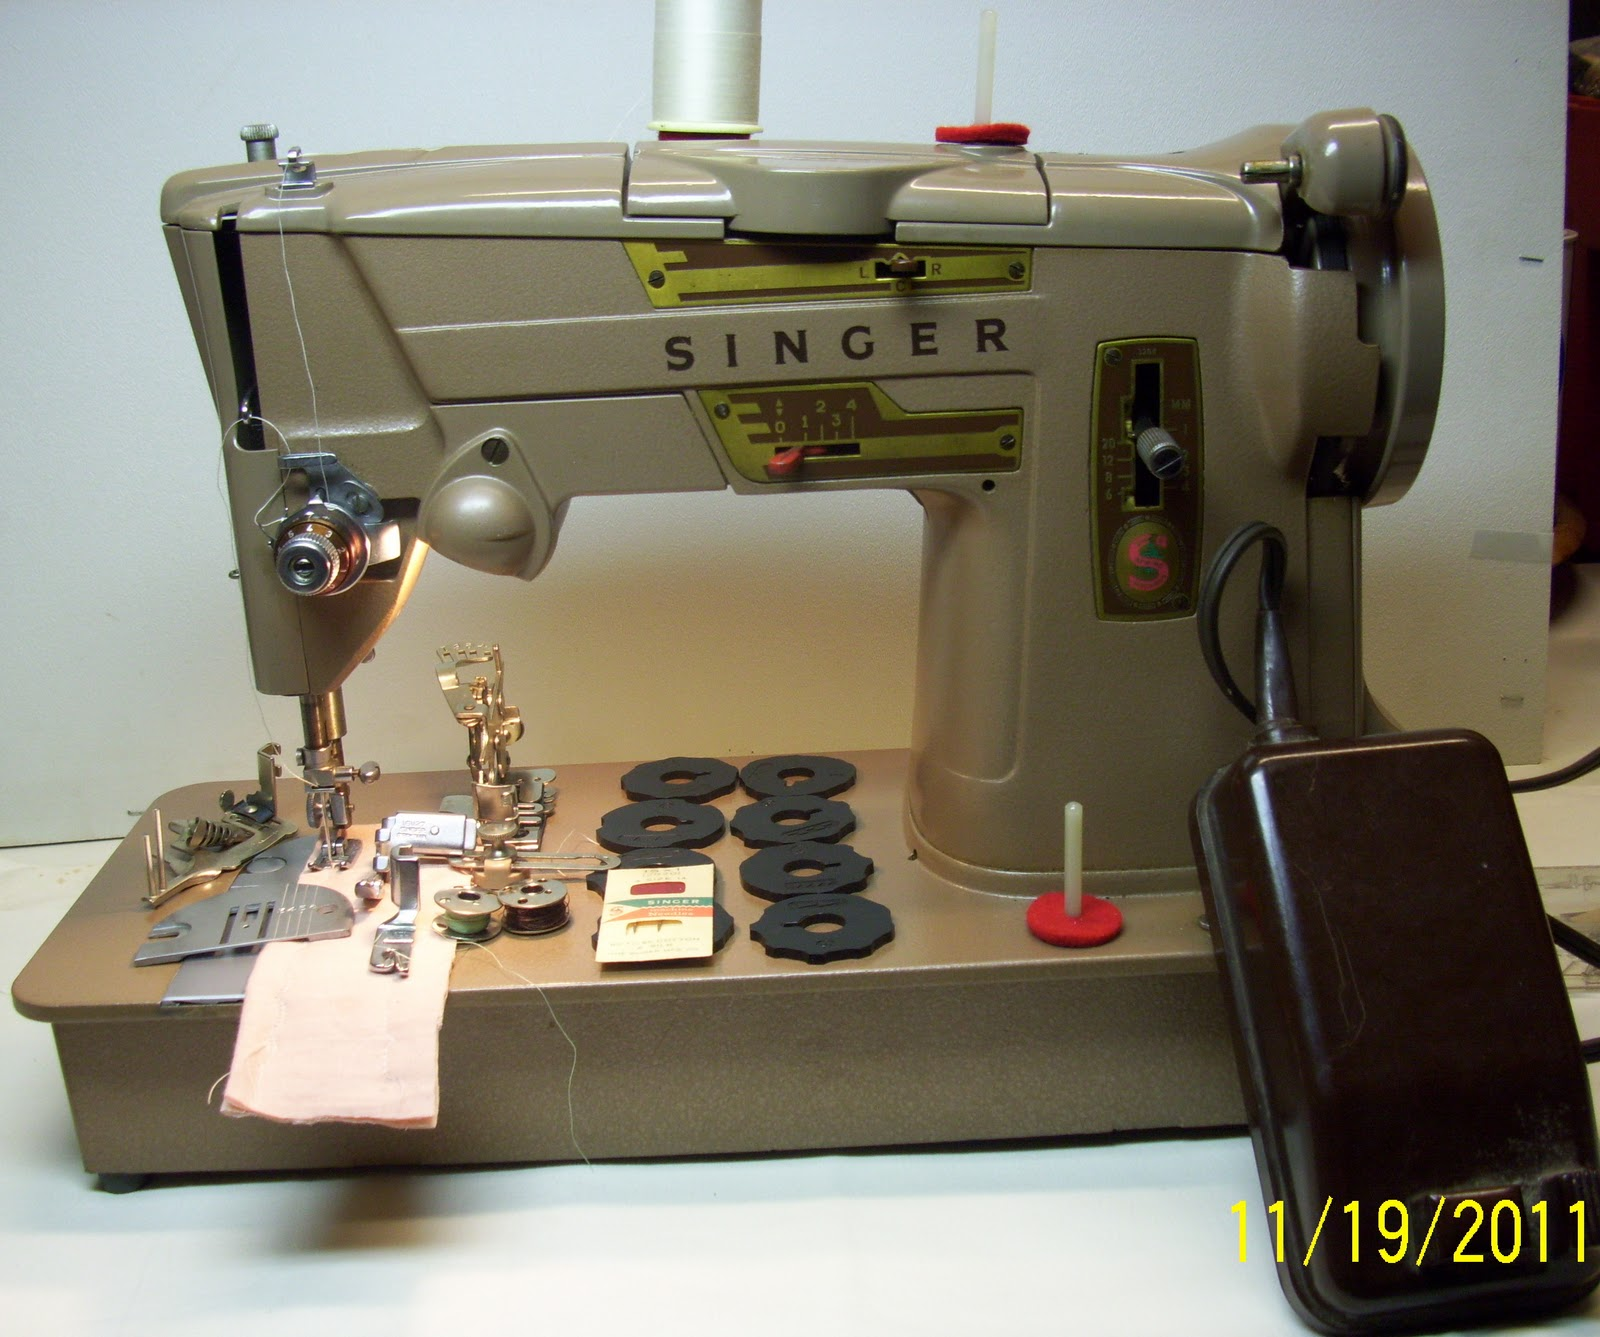 Like these machines he is a very famous sewing machine guru who owns